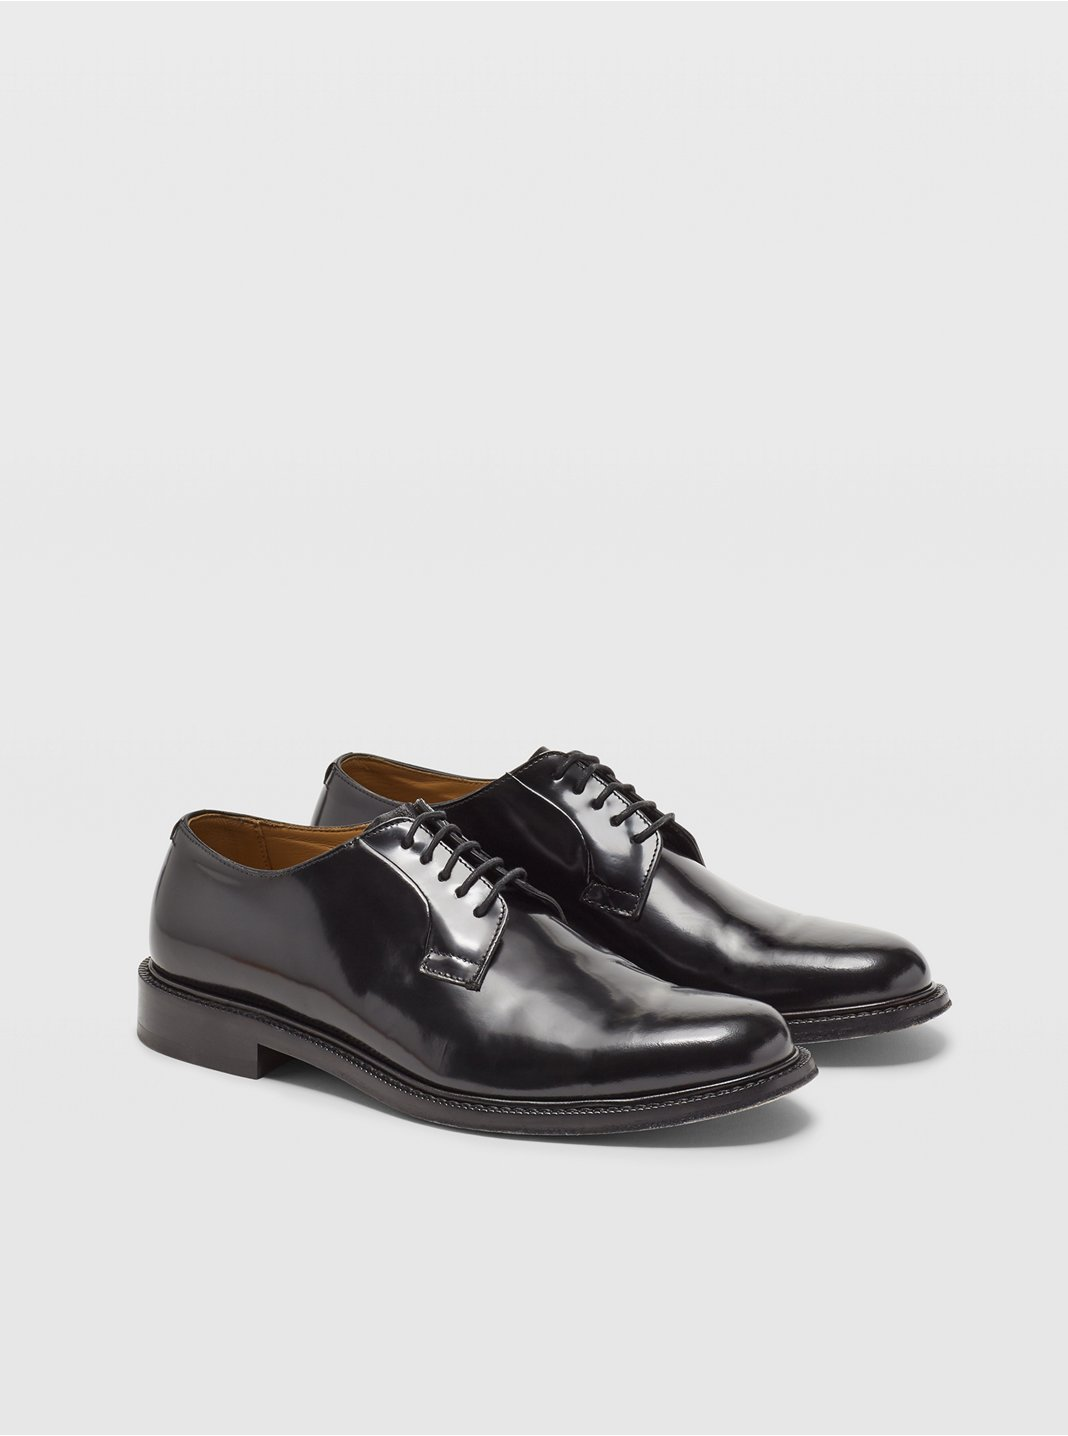 Club Monaco Oxford Shoe